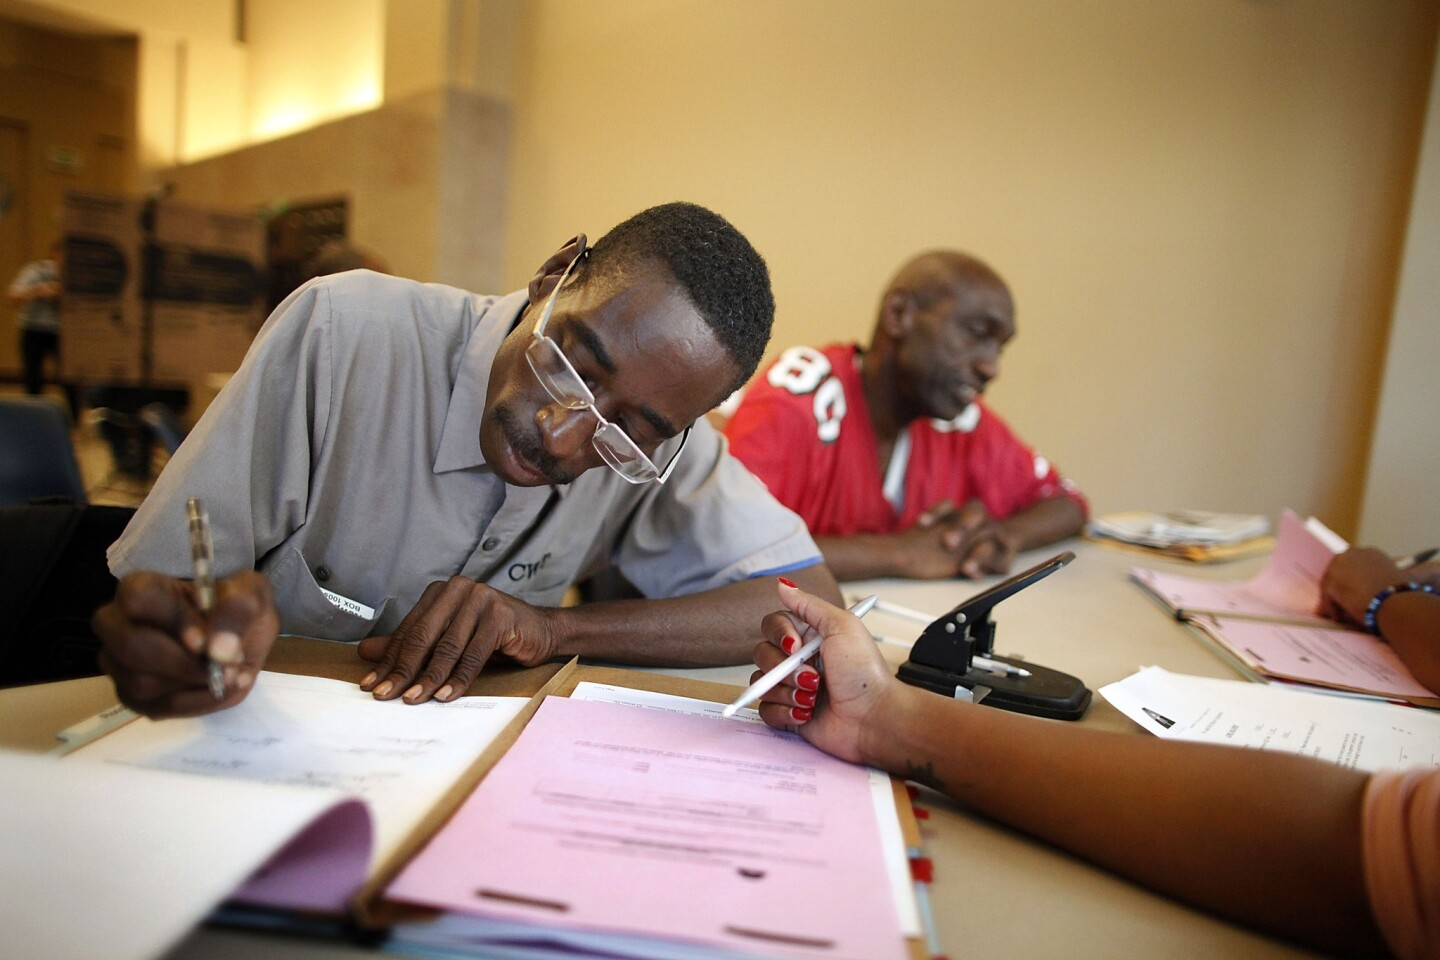 Anthony Smith, 49,fills out paperwork needed to secure his new studio apartment inside the Historic Rosslyn Hotel annex in downtown Los Angeles. Smith is among 75 chronically homeless veterans moving into the $32-million SRO Housing Corp. project.